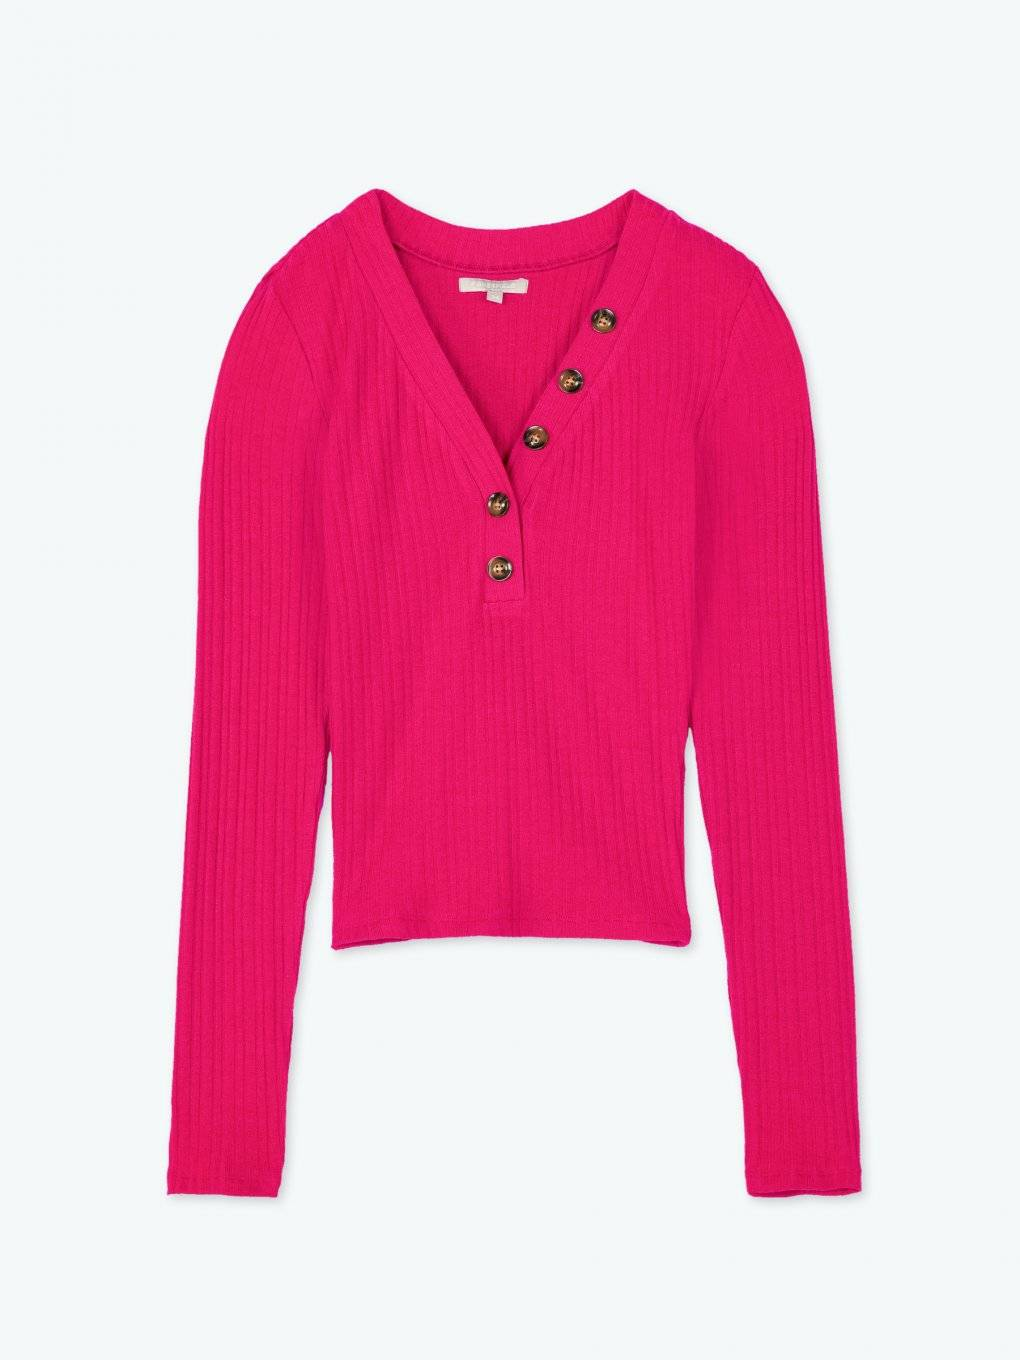 Ribbed v-neck long sleeve top with buttons